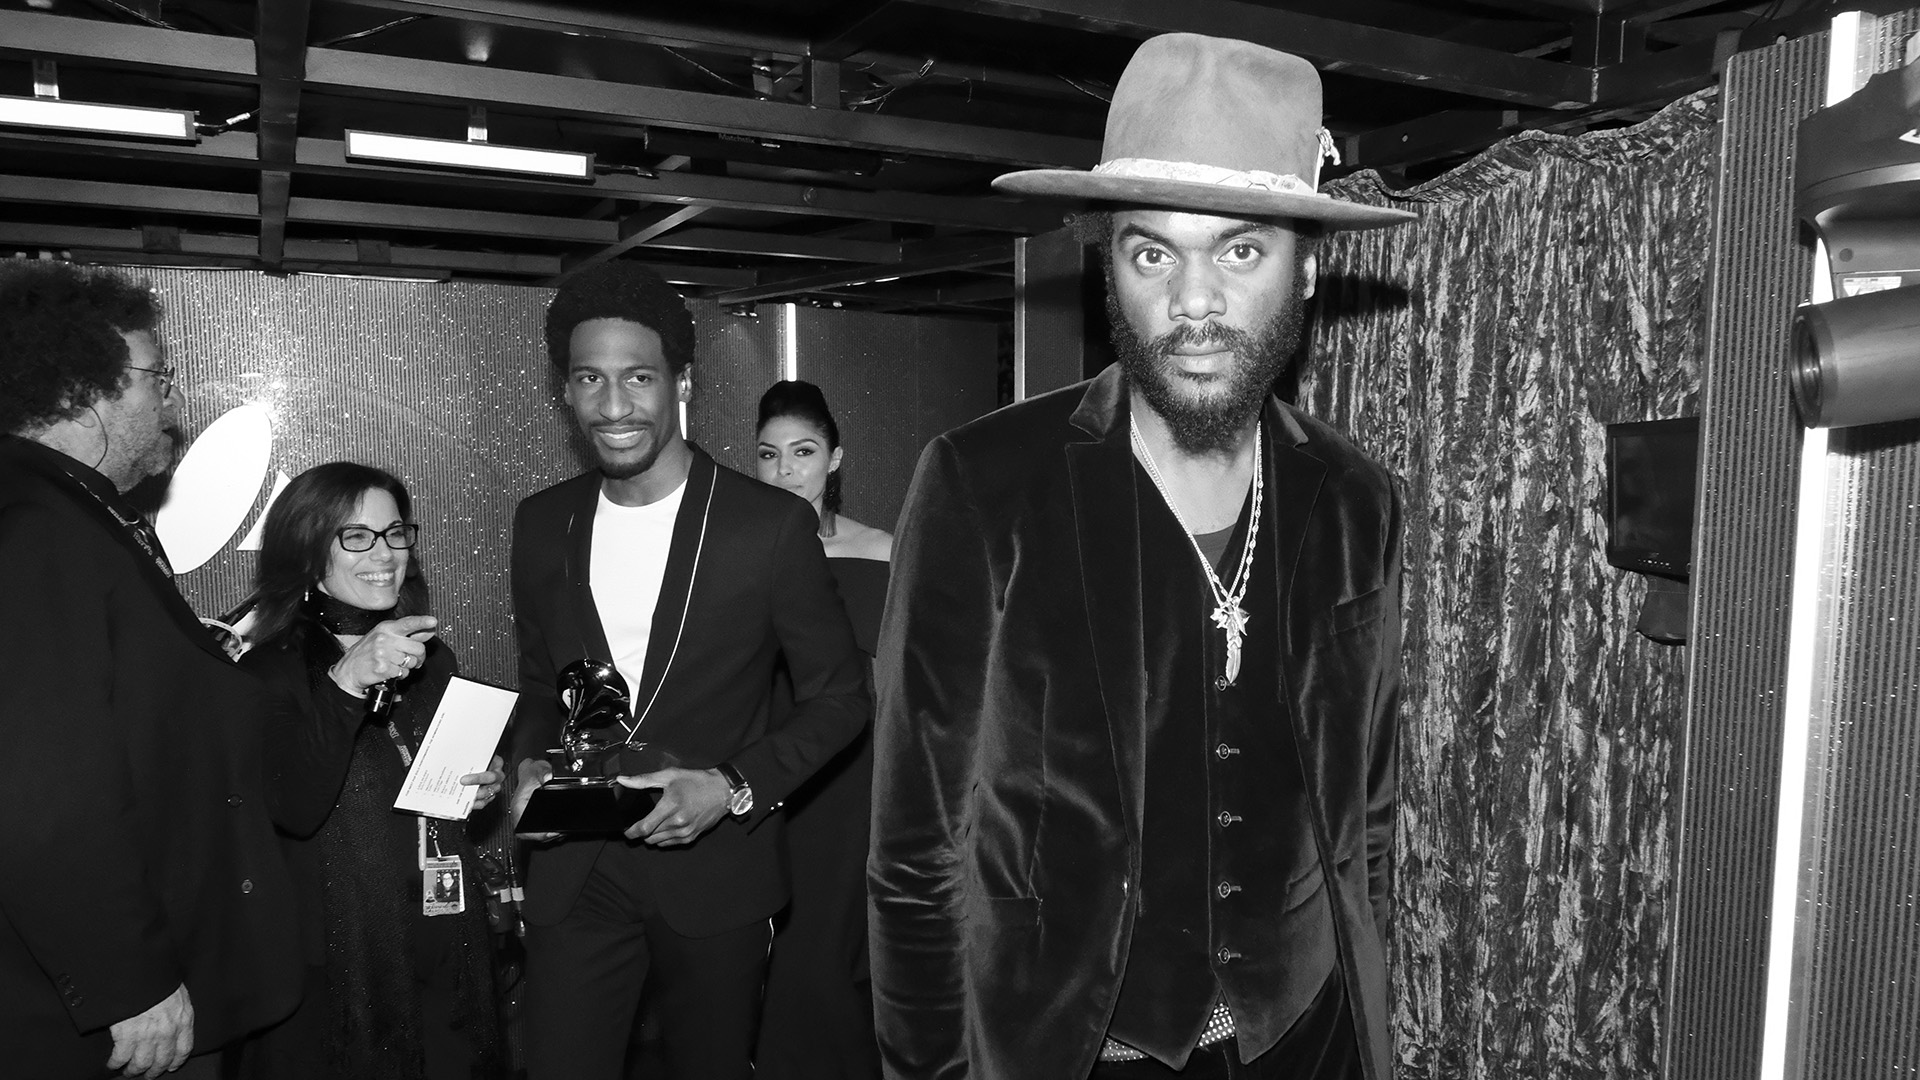 Presenters and performers Gary Clark Jr. and Jon Batiste walk backstage after accepting Ed Sheeran's GRAMMY for Best Pop Solo Performance.